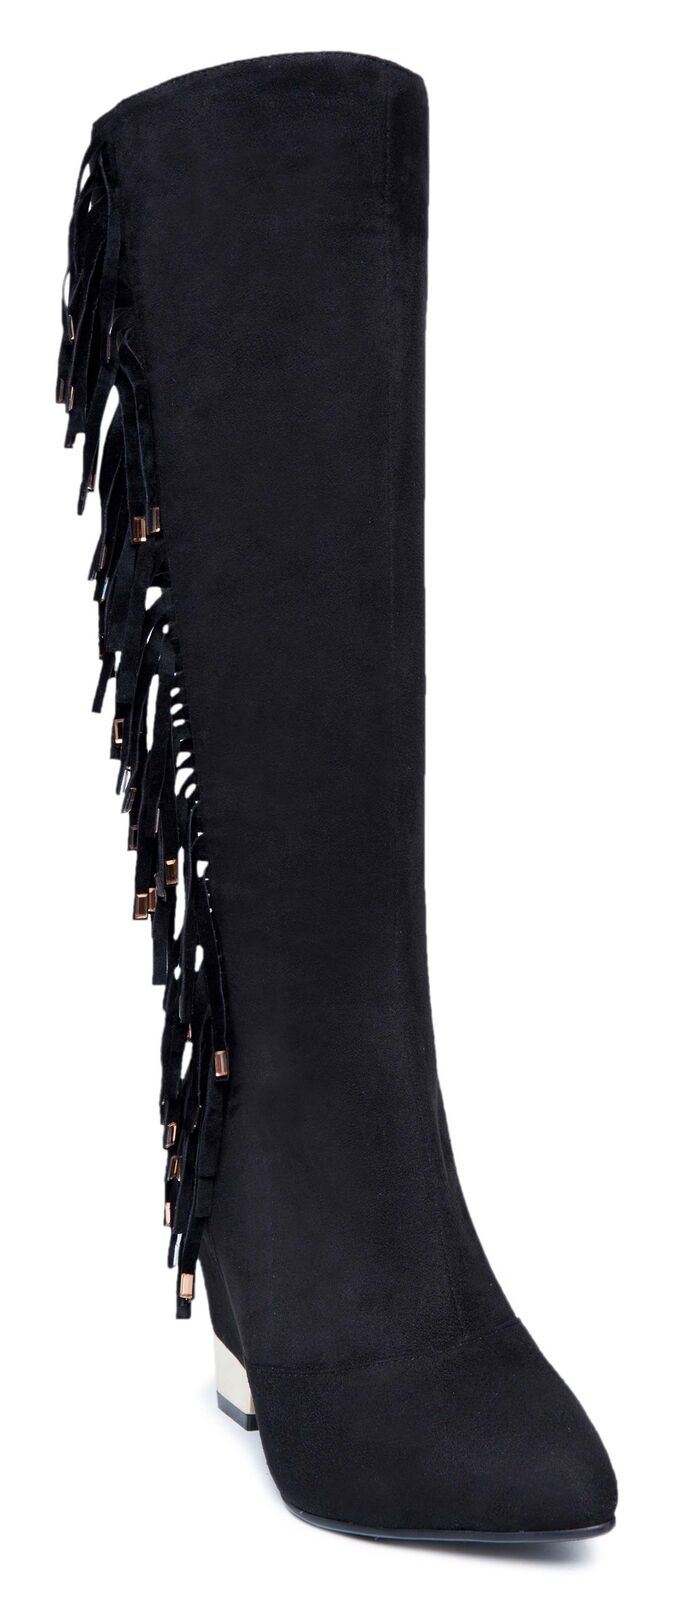 Ann Creek Wouomo 'Jules' Fringe and Plated Heel stivali